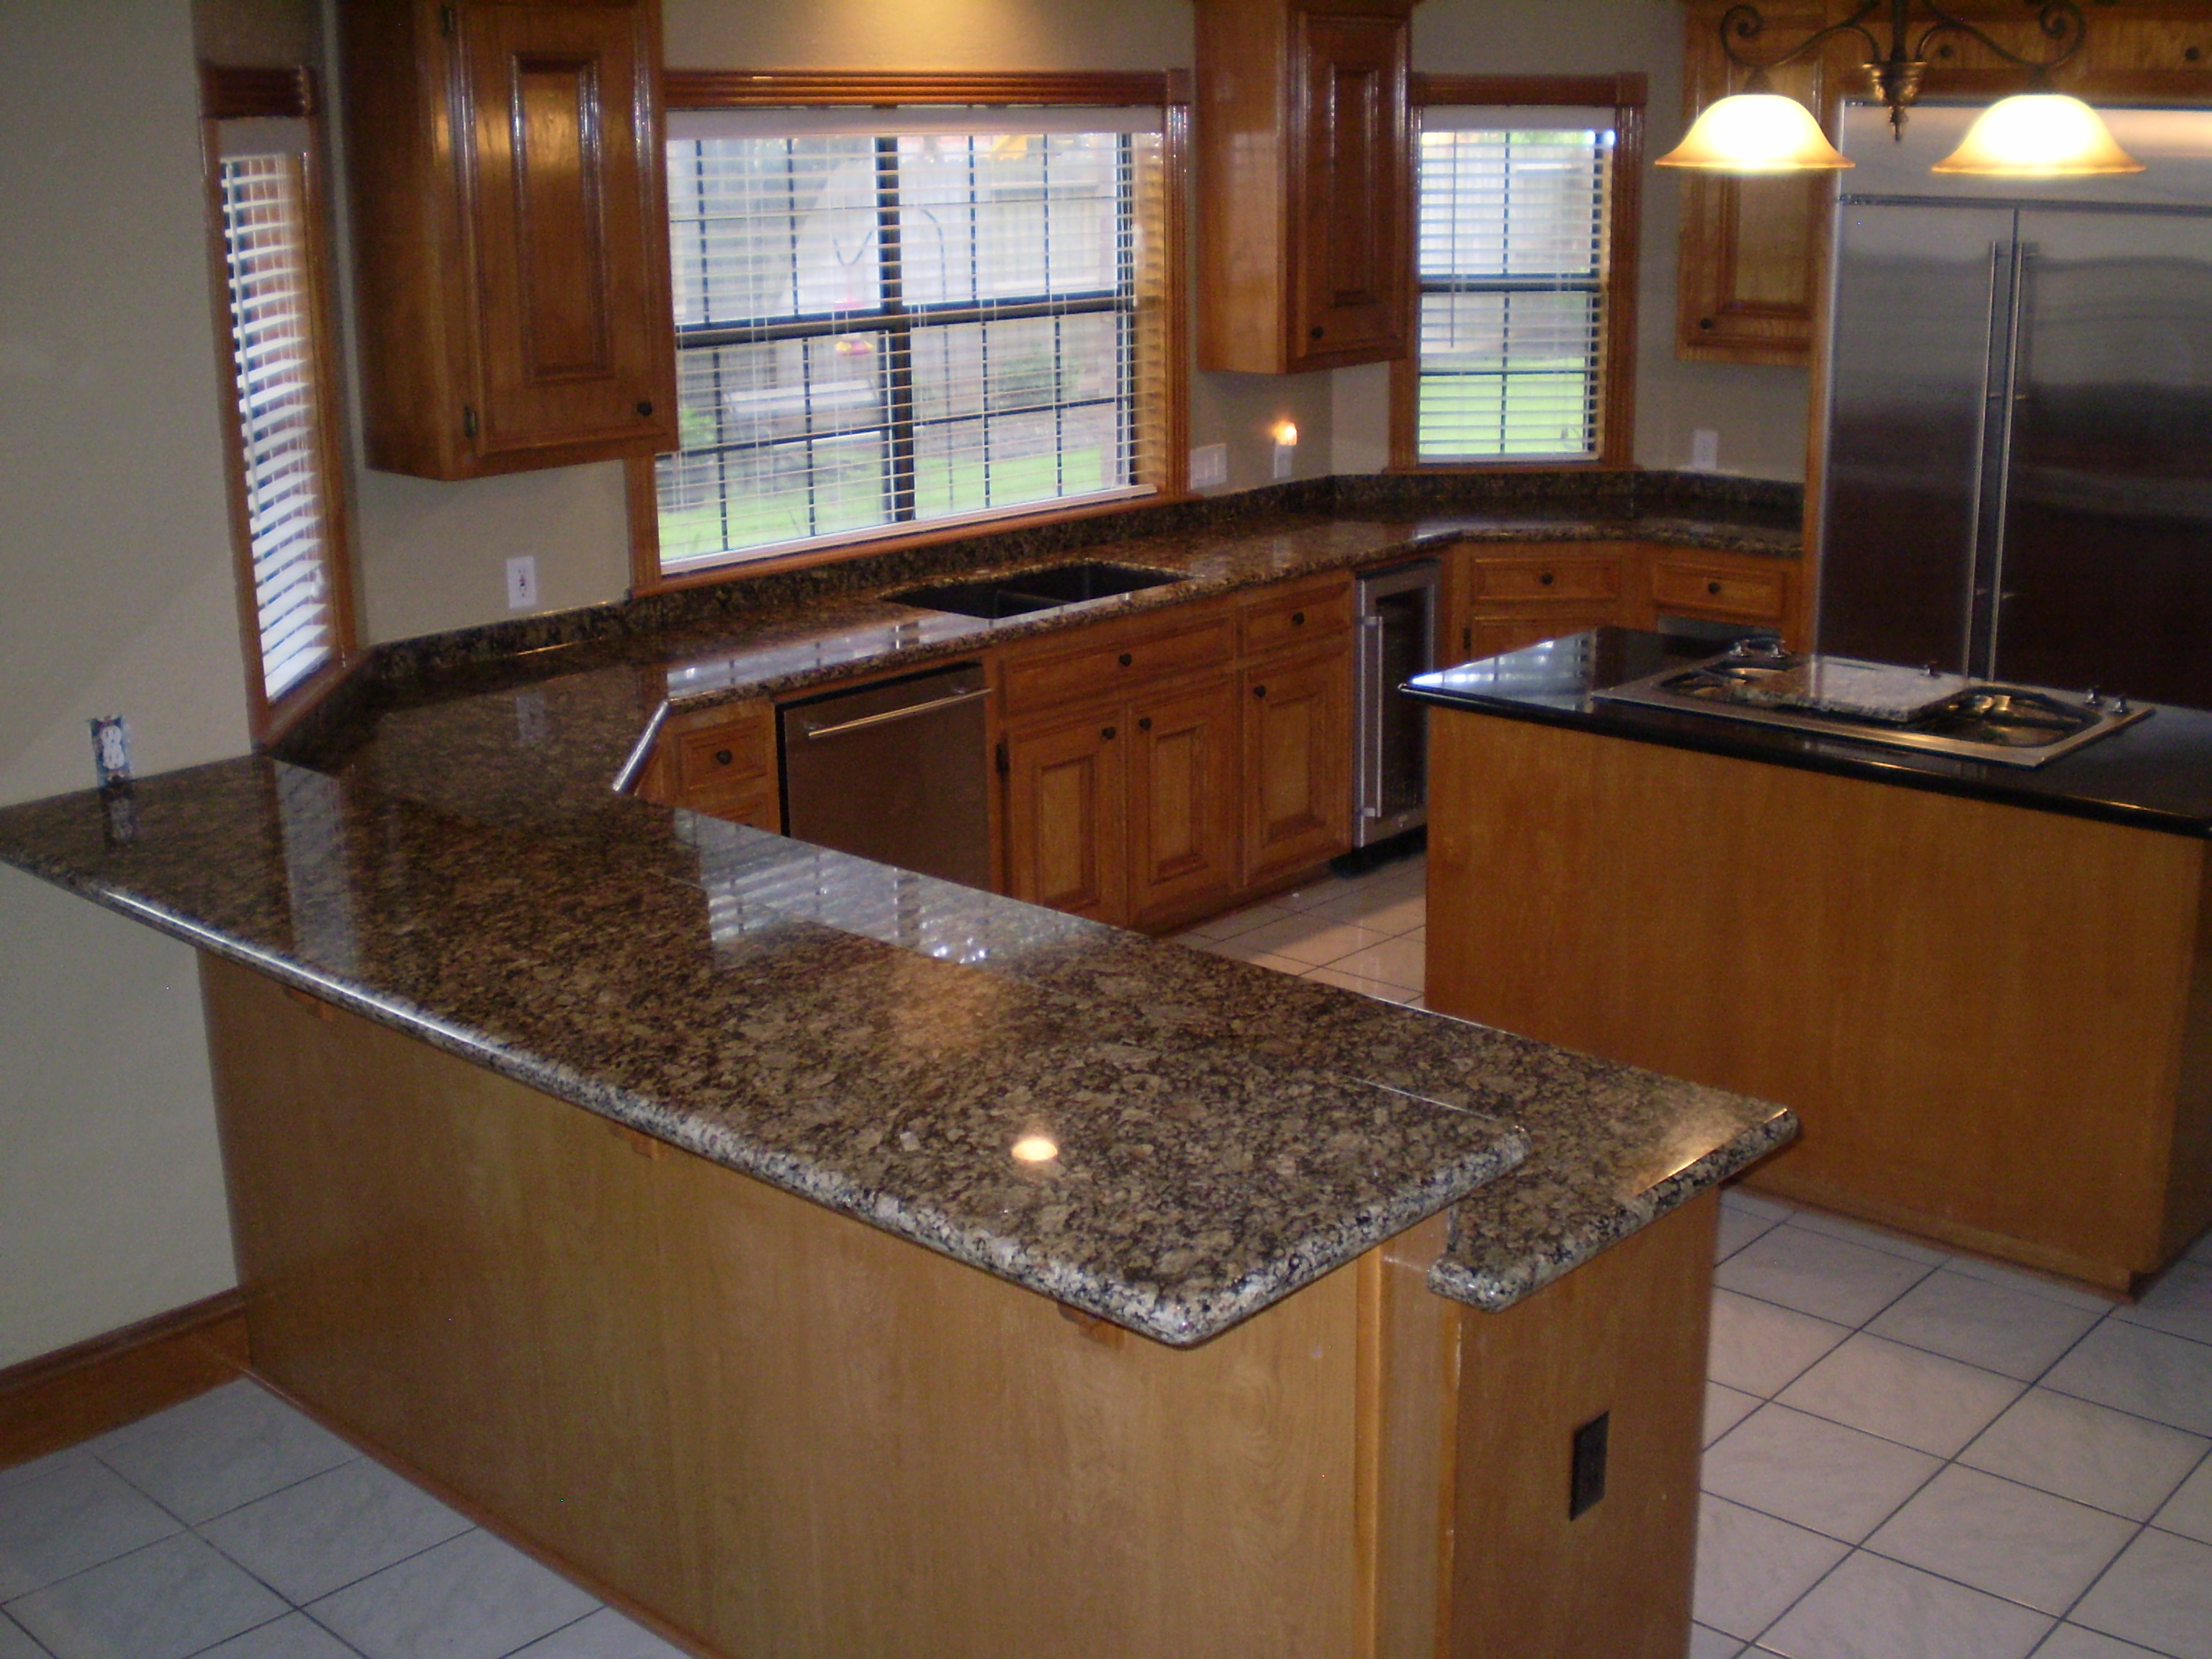 Countertop Fabricators : Silestone, Granite, Caesarstone, Zodiaq, Viatera, countertops, Houston